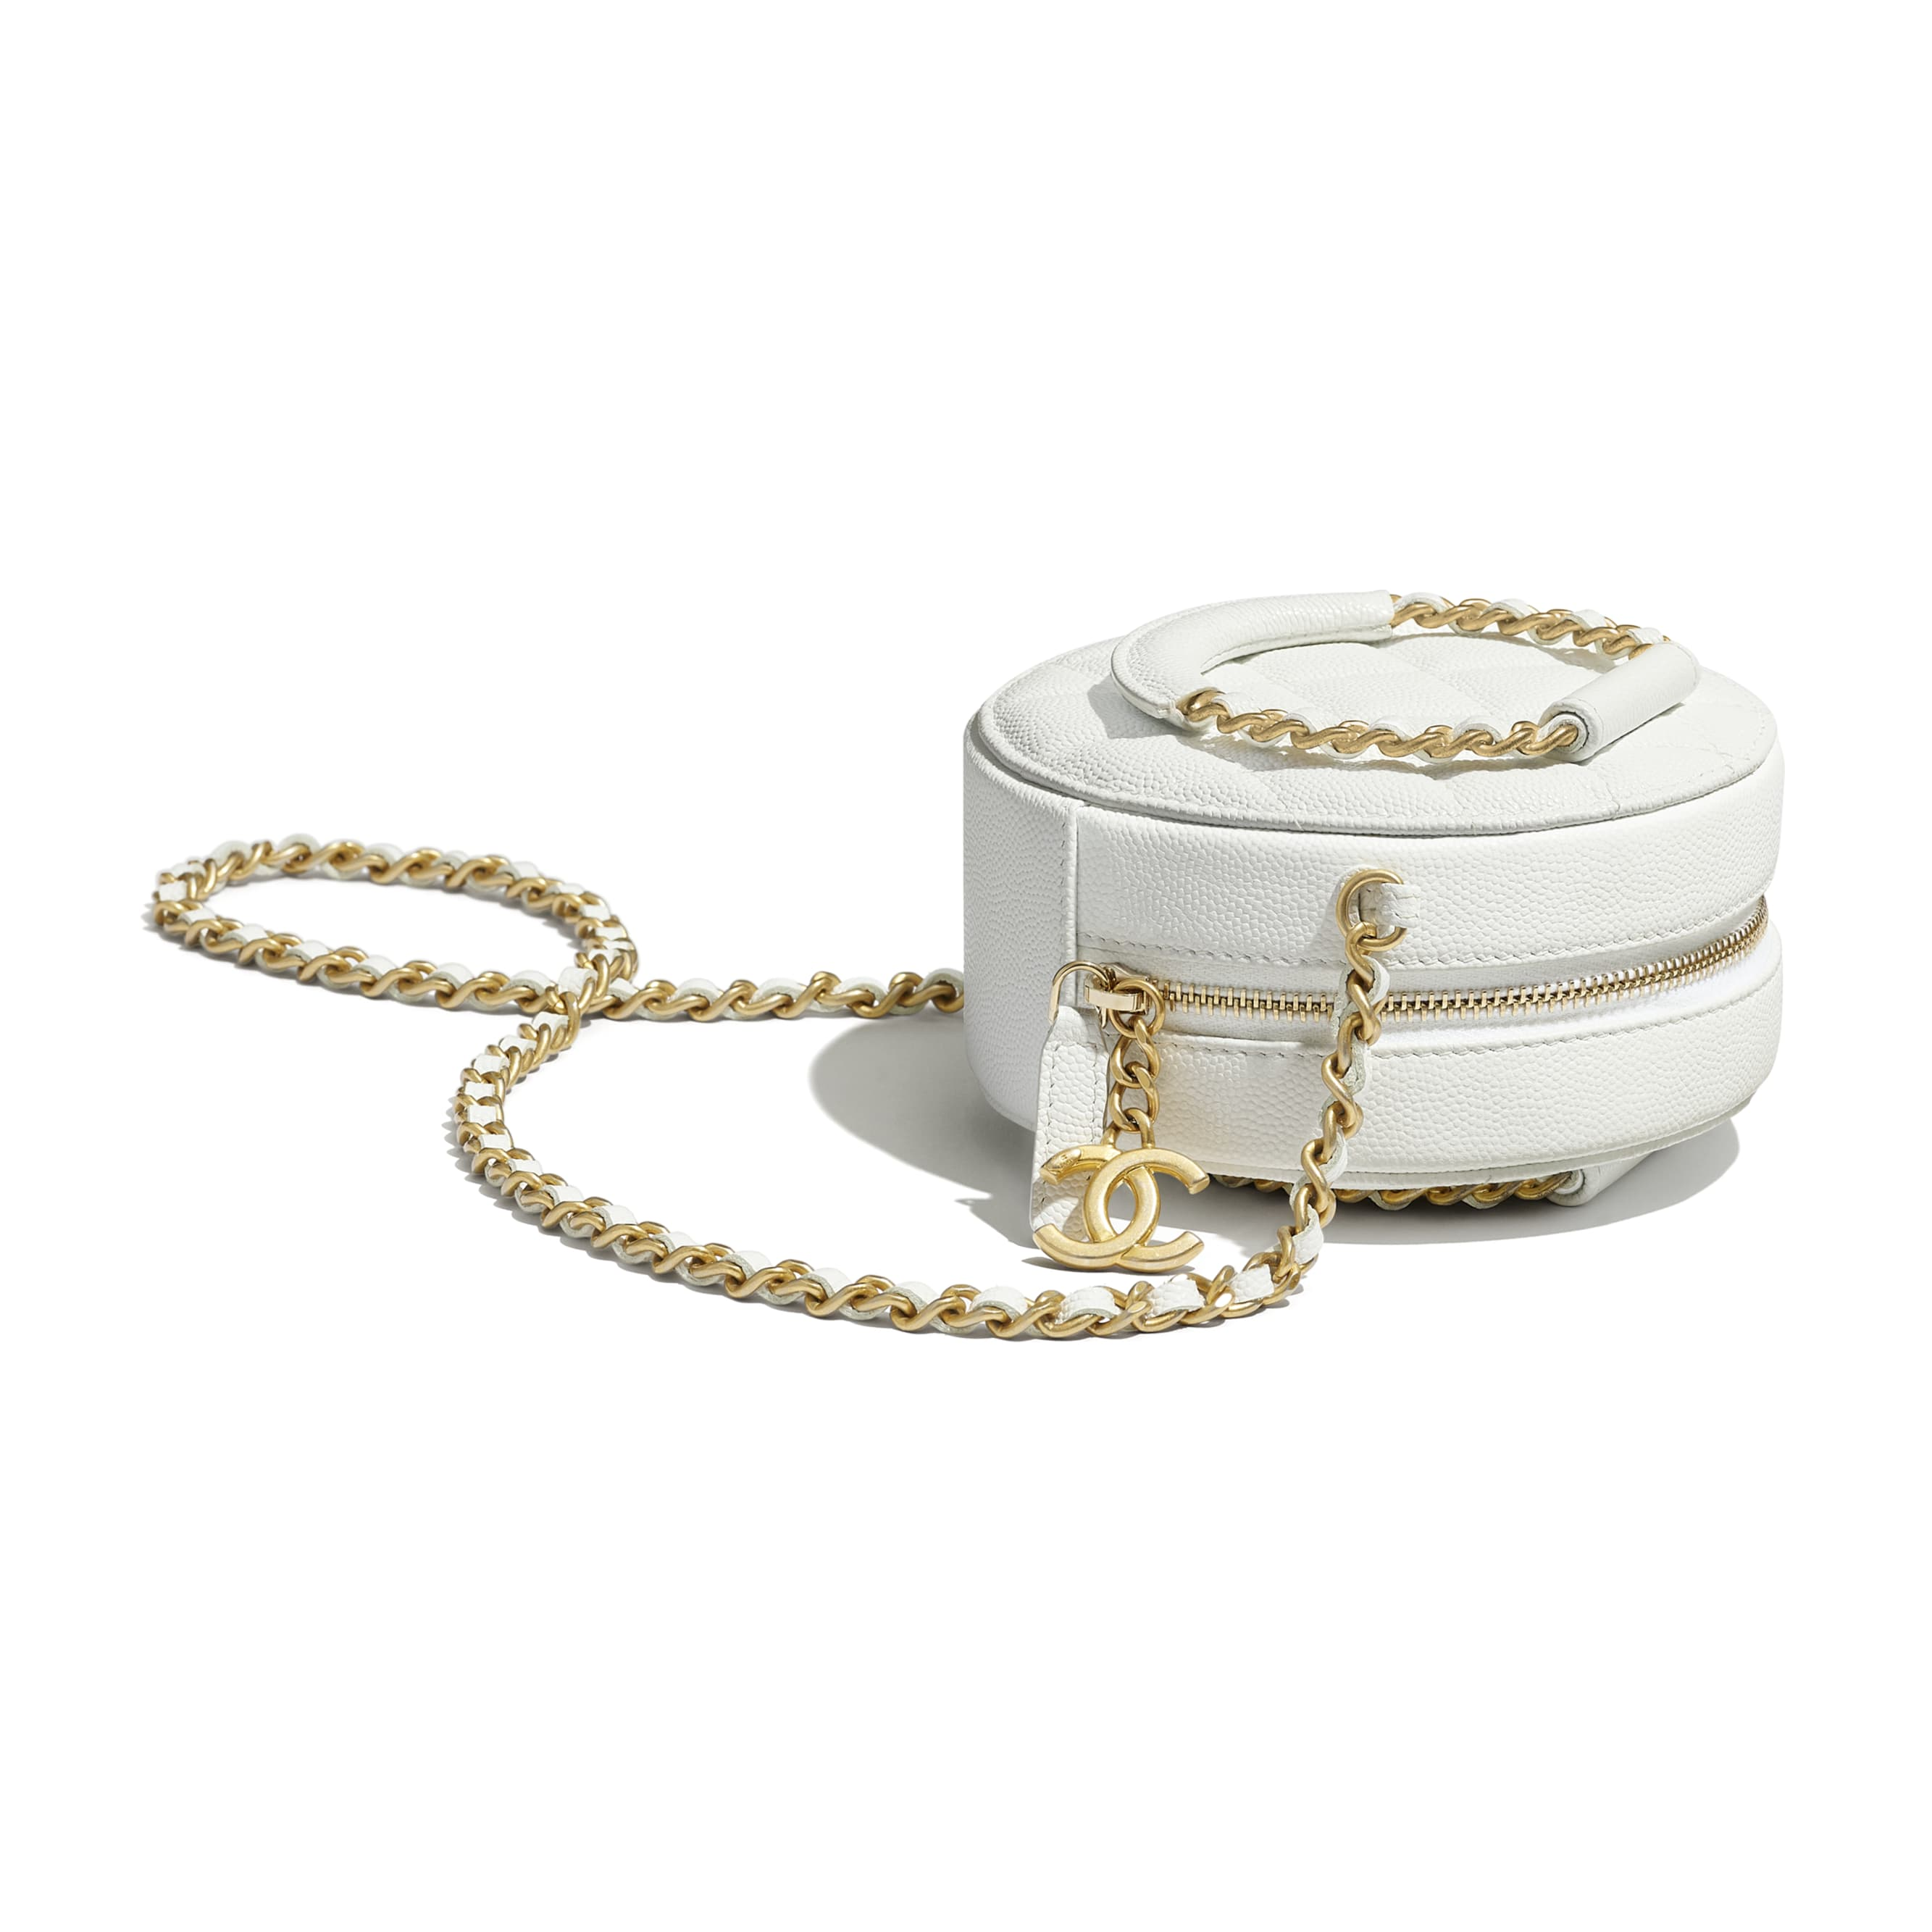 Clutch With Chain - White - Grained Shiny Calfskin & Gold-Tone Metal - CHANEL - Extra view - see standard sized version